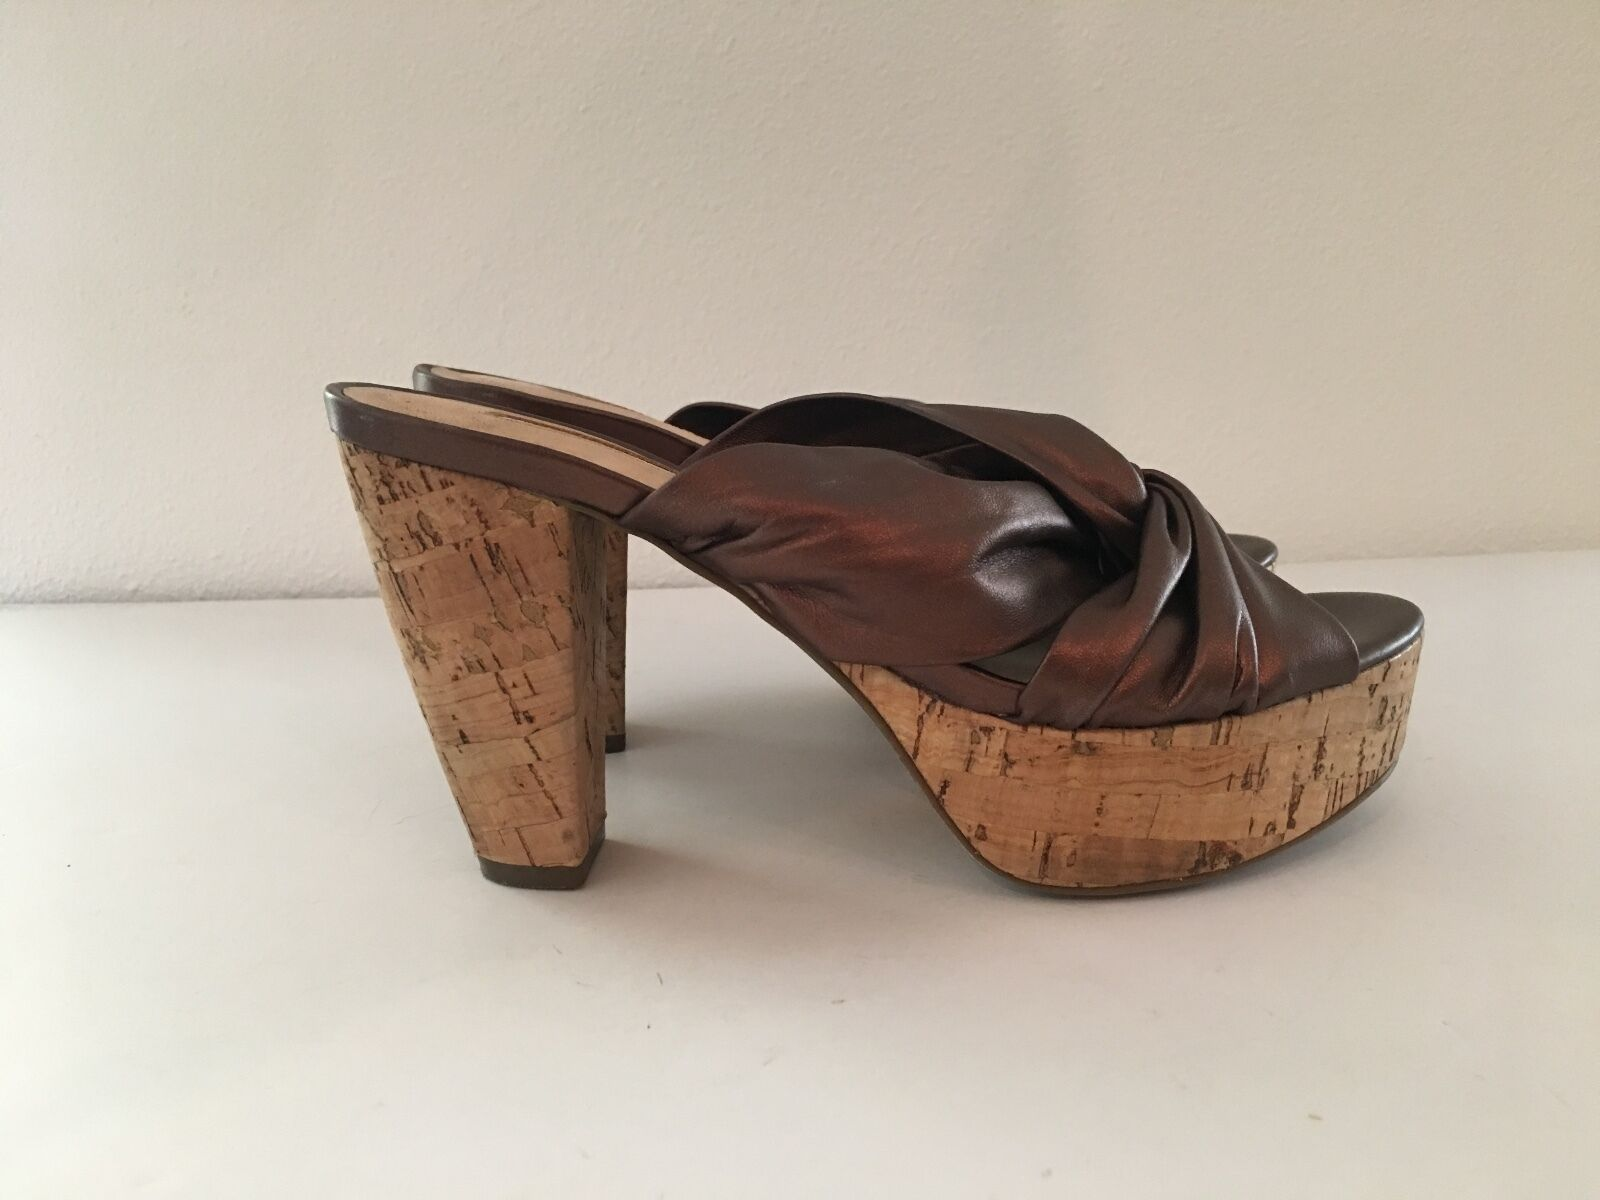 VIA SPIGA SANDAL BROWN LEATHER PLATFORM SLIDES SANDAL SPIGA SIZE 6.5 $189 5dc1d6